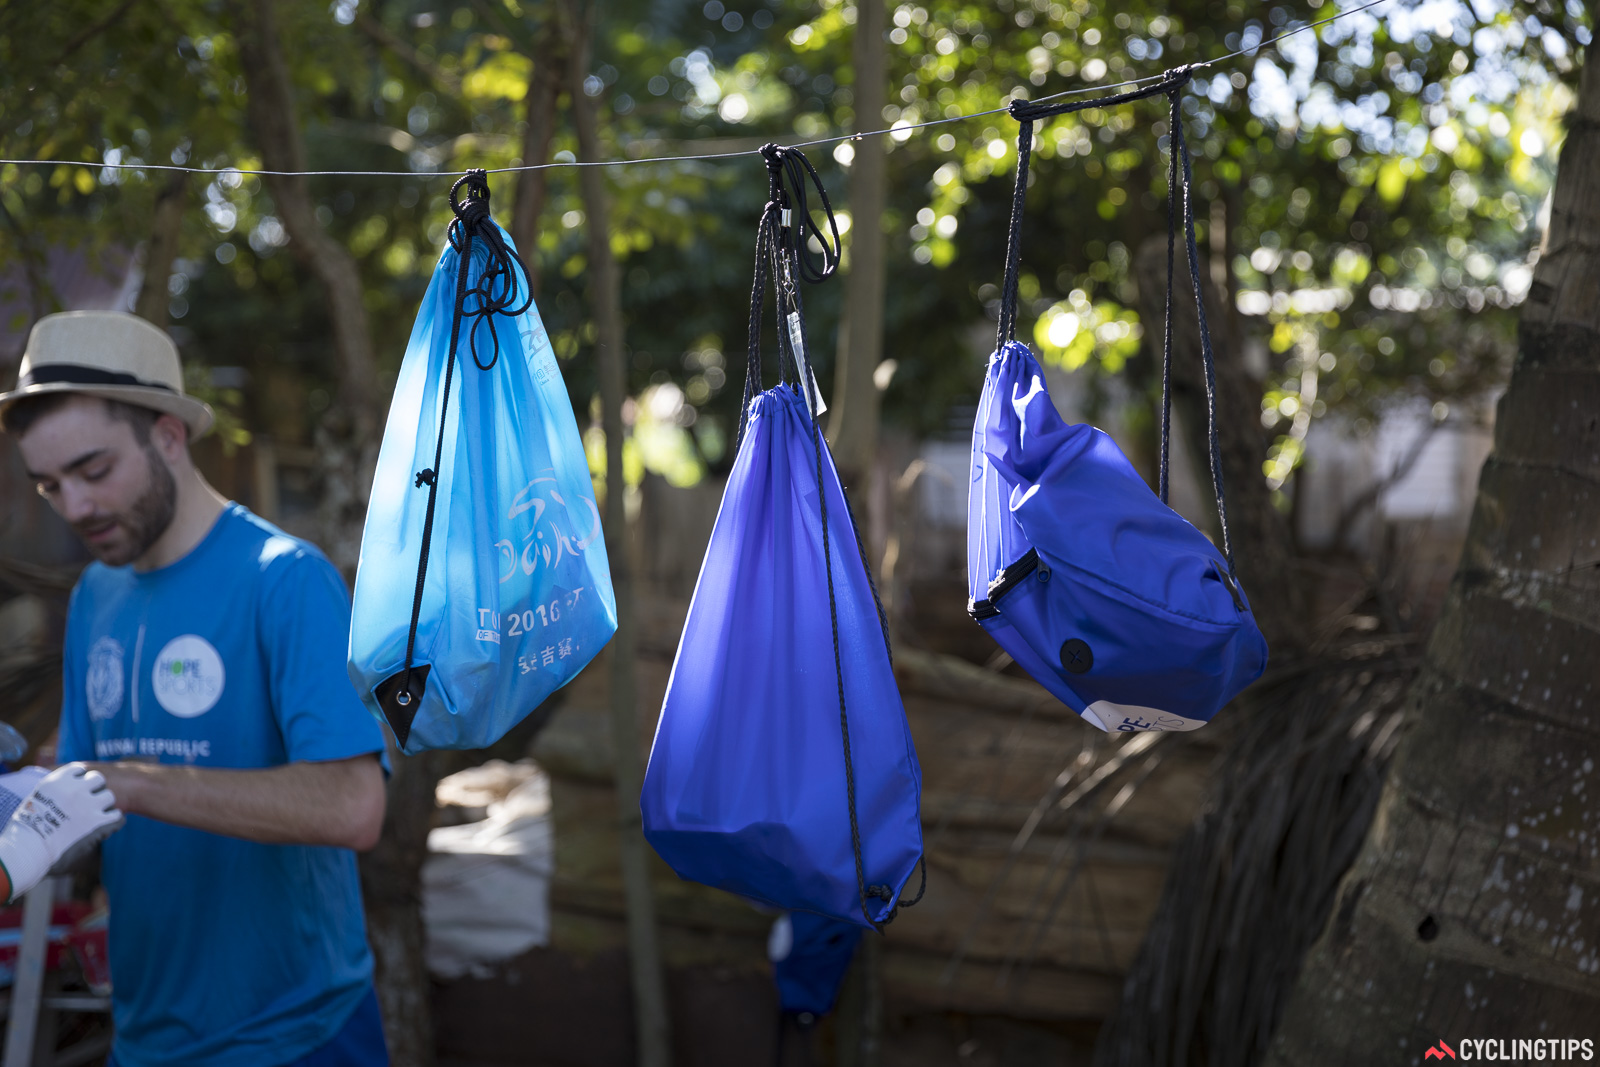 Many of the volunteers had small bags containing their personal items. These were suspended above ground level for safety and also hygene. Photo by Shane Stokes.